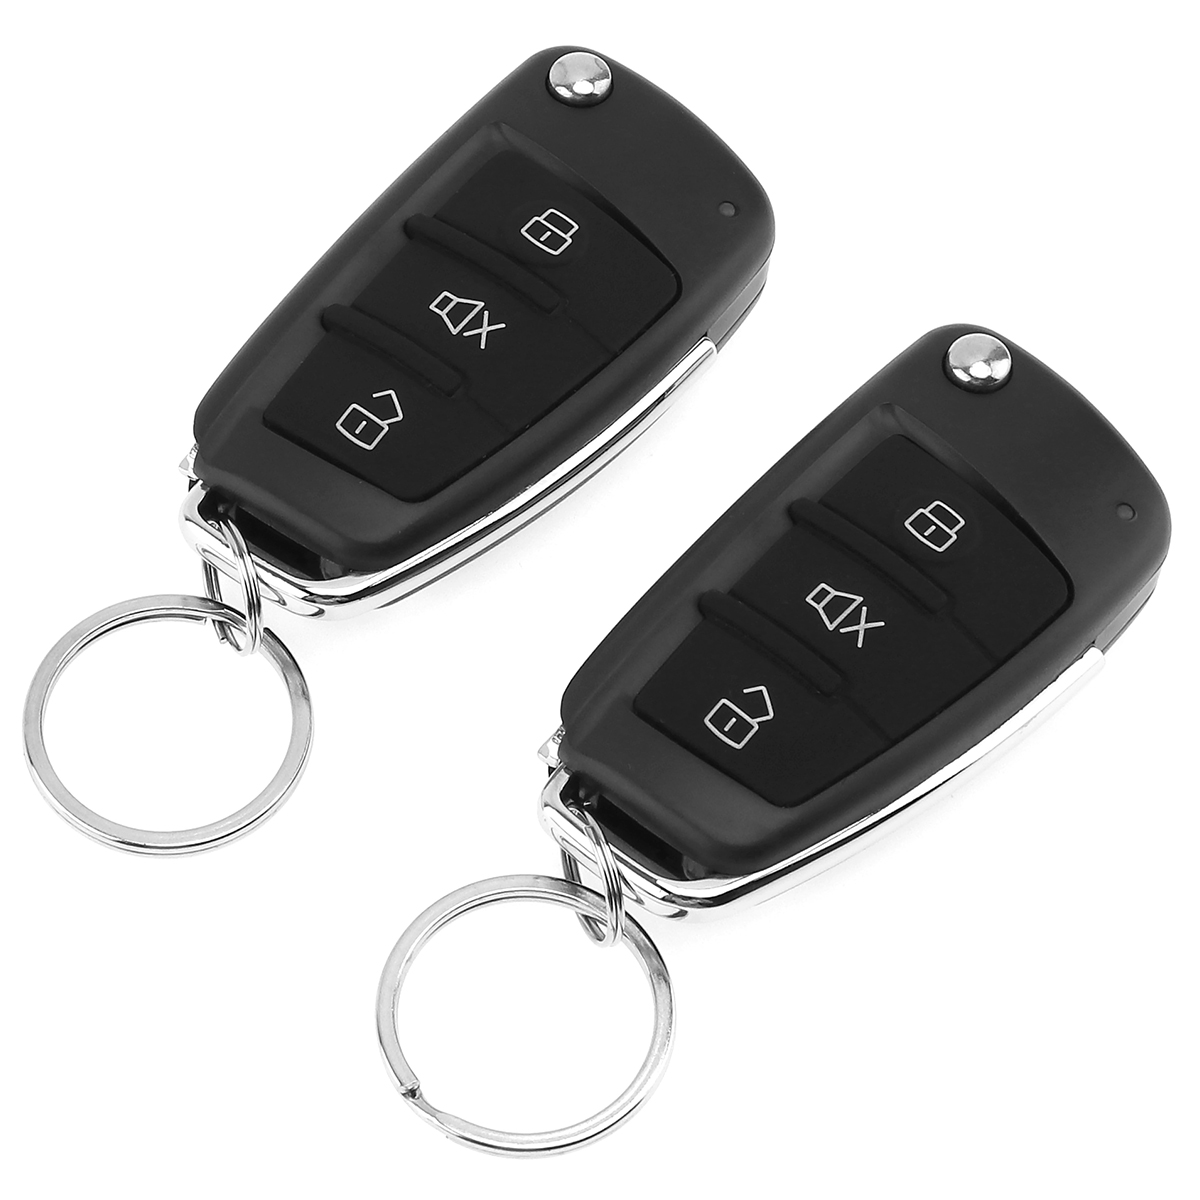 12V Car Alarm System Vehicle Keyless Entry System with Remote Control & Door Lock Automatically for KIA